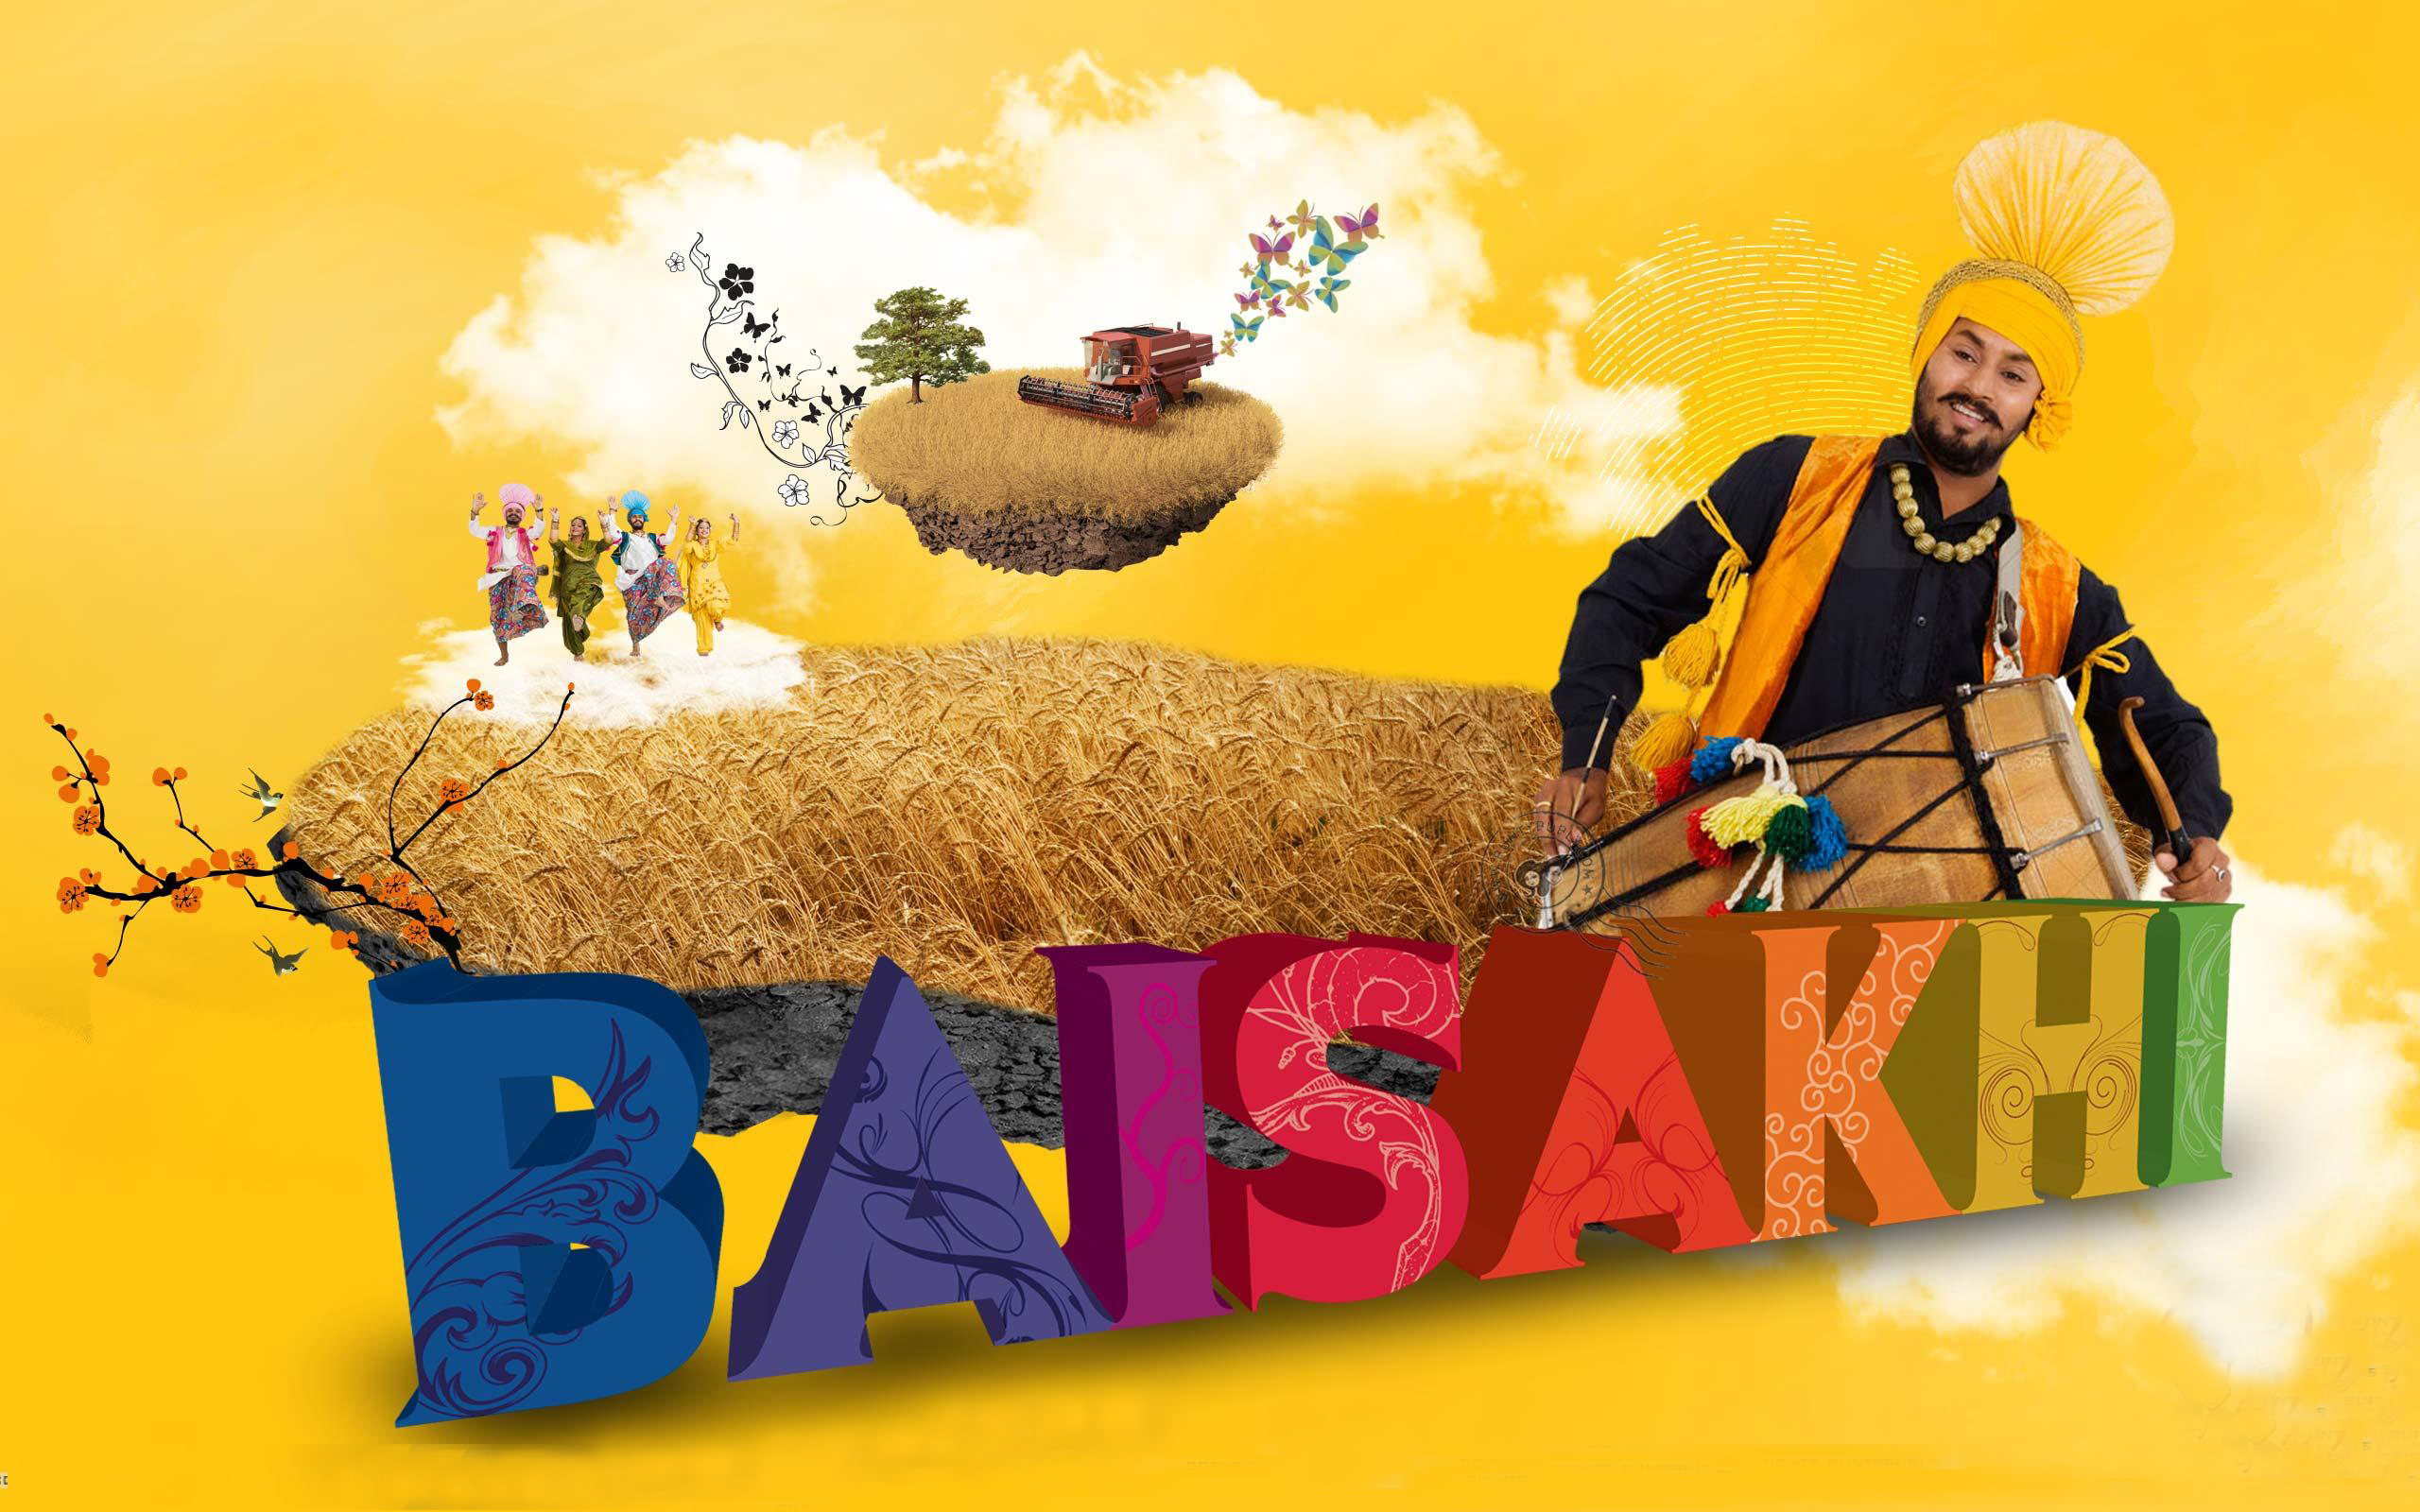 baisakhi images whatsapp fb dp11